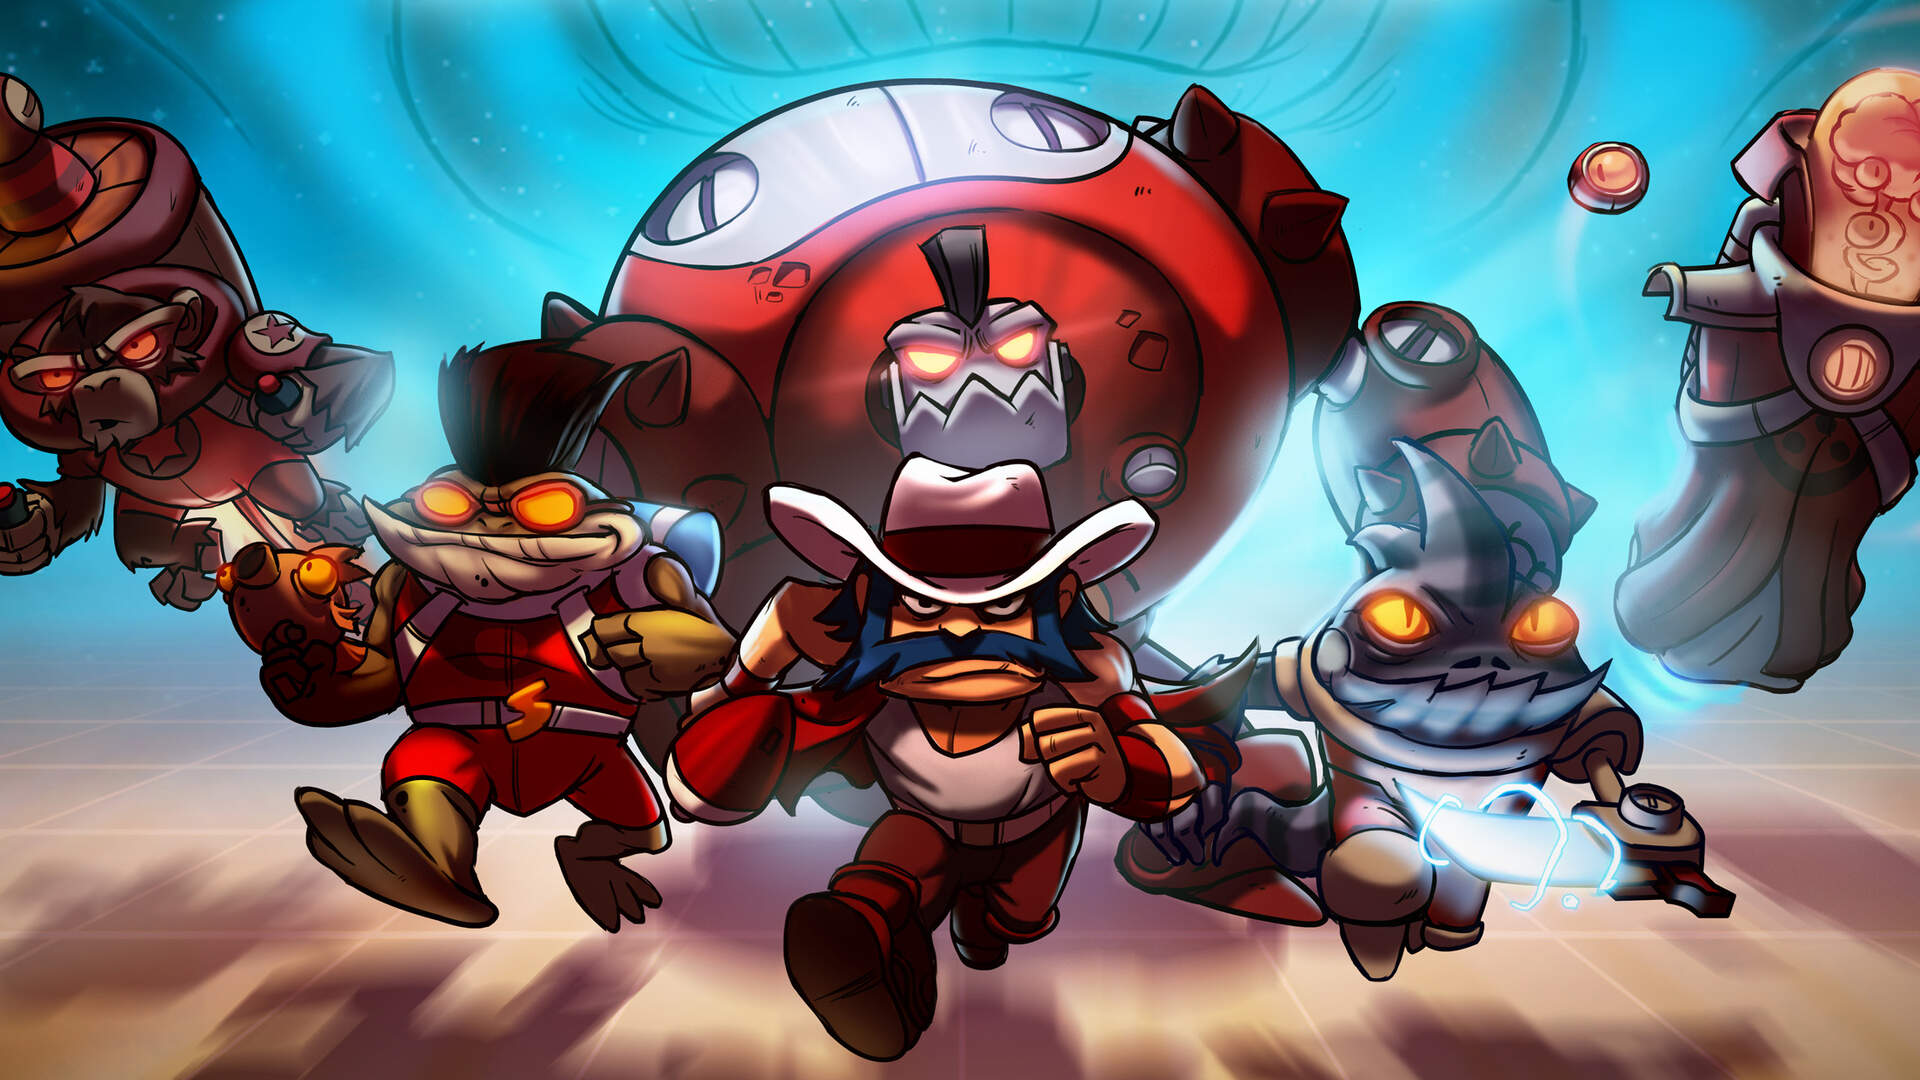 Awesomenauts Gets Charitable with New Skin